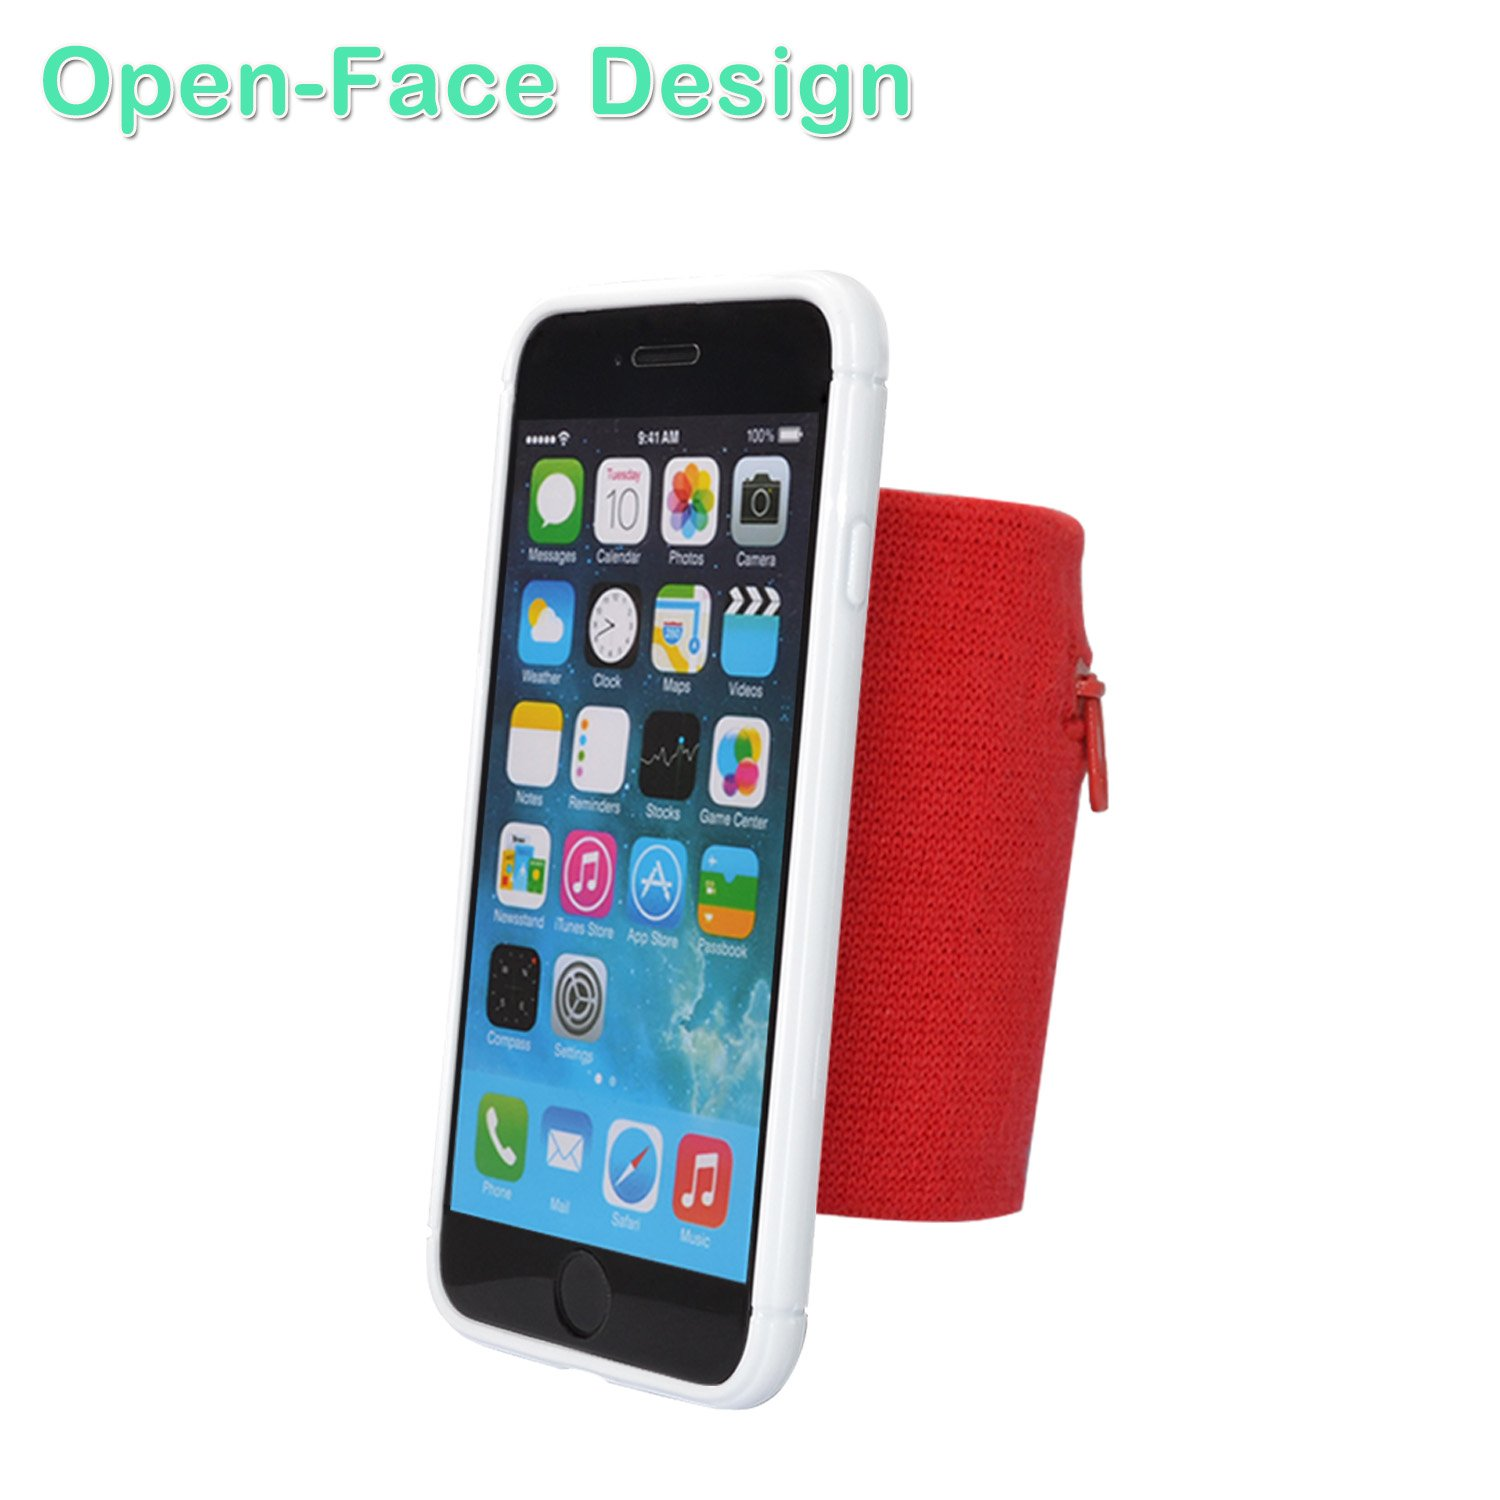 Red /& White s WANPOOL Sport Sweatband Wristband Forearm Band with a Little Pouch for Keys and Coins for iPhone 6